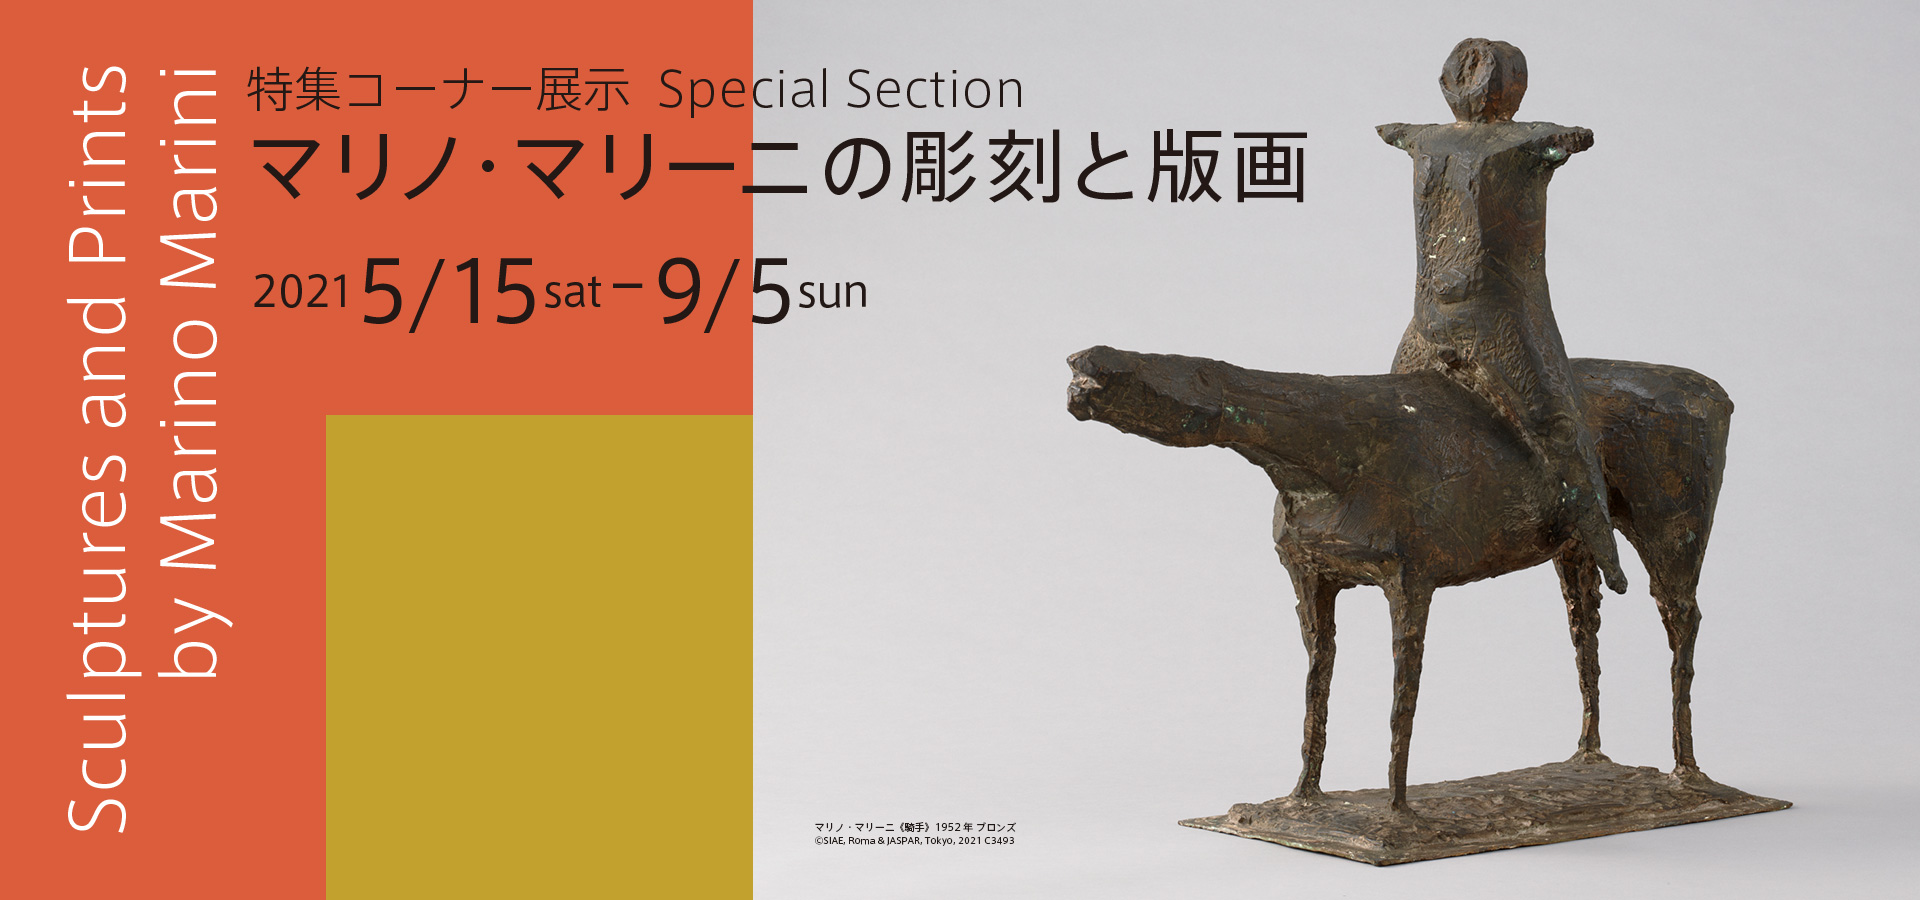 Special Section Sculptures and Prints by Marino Marini